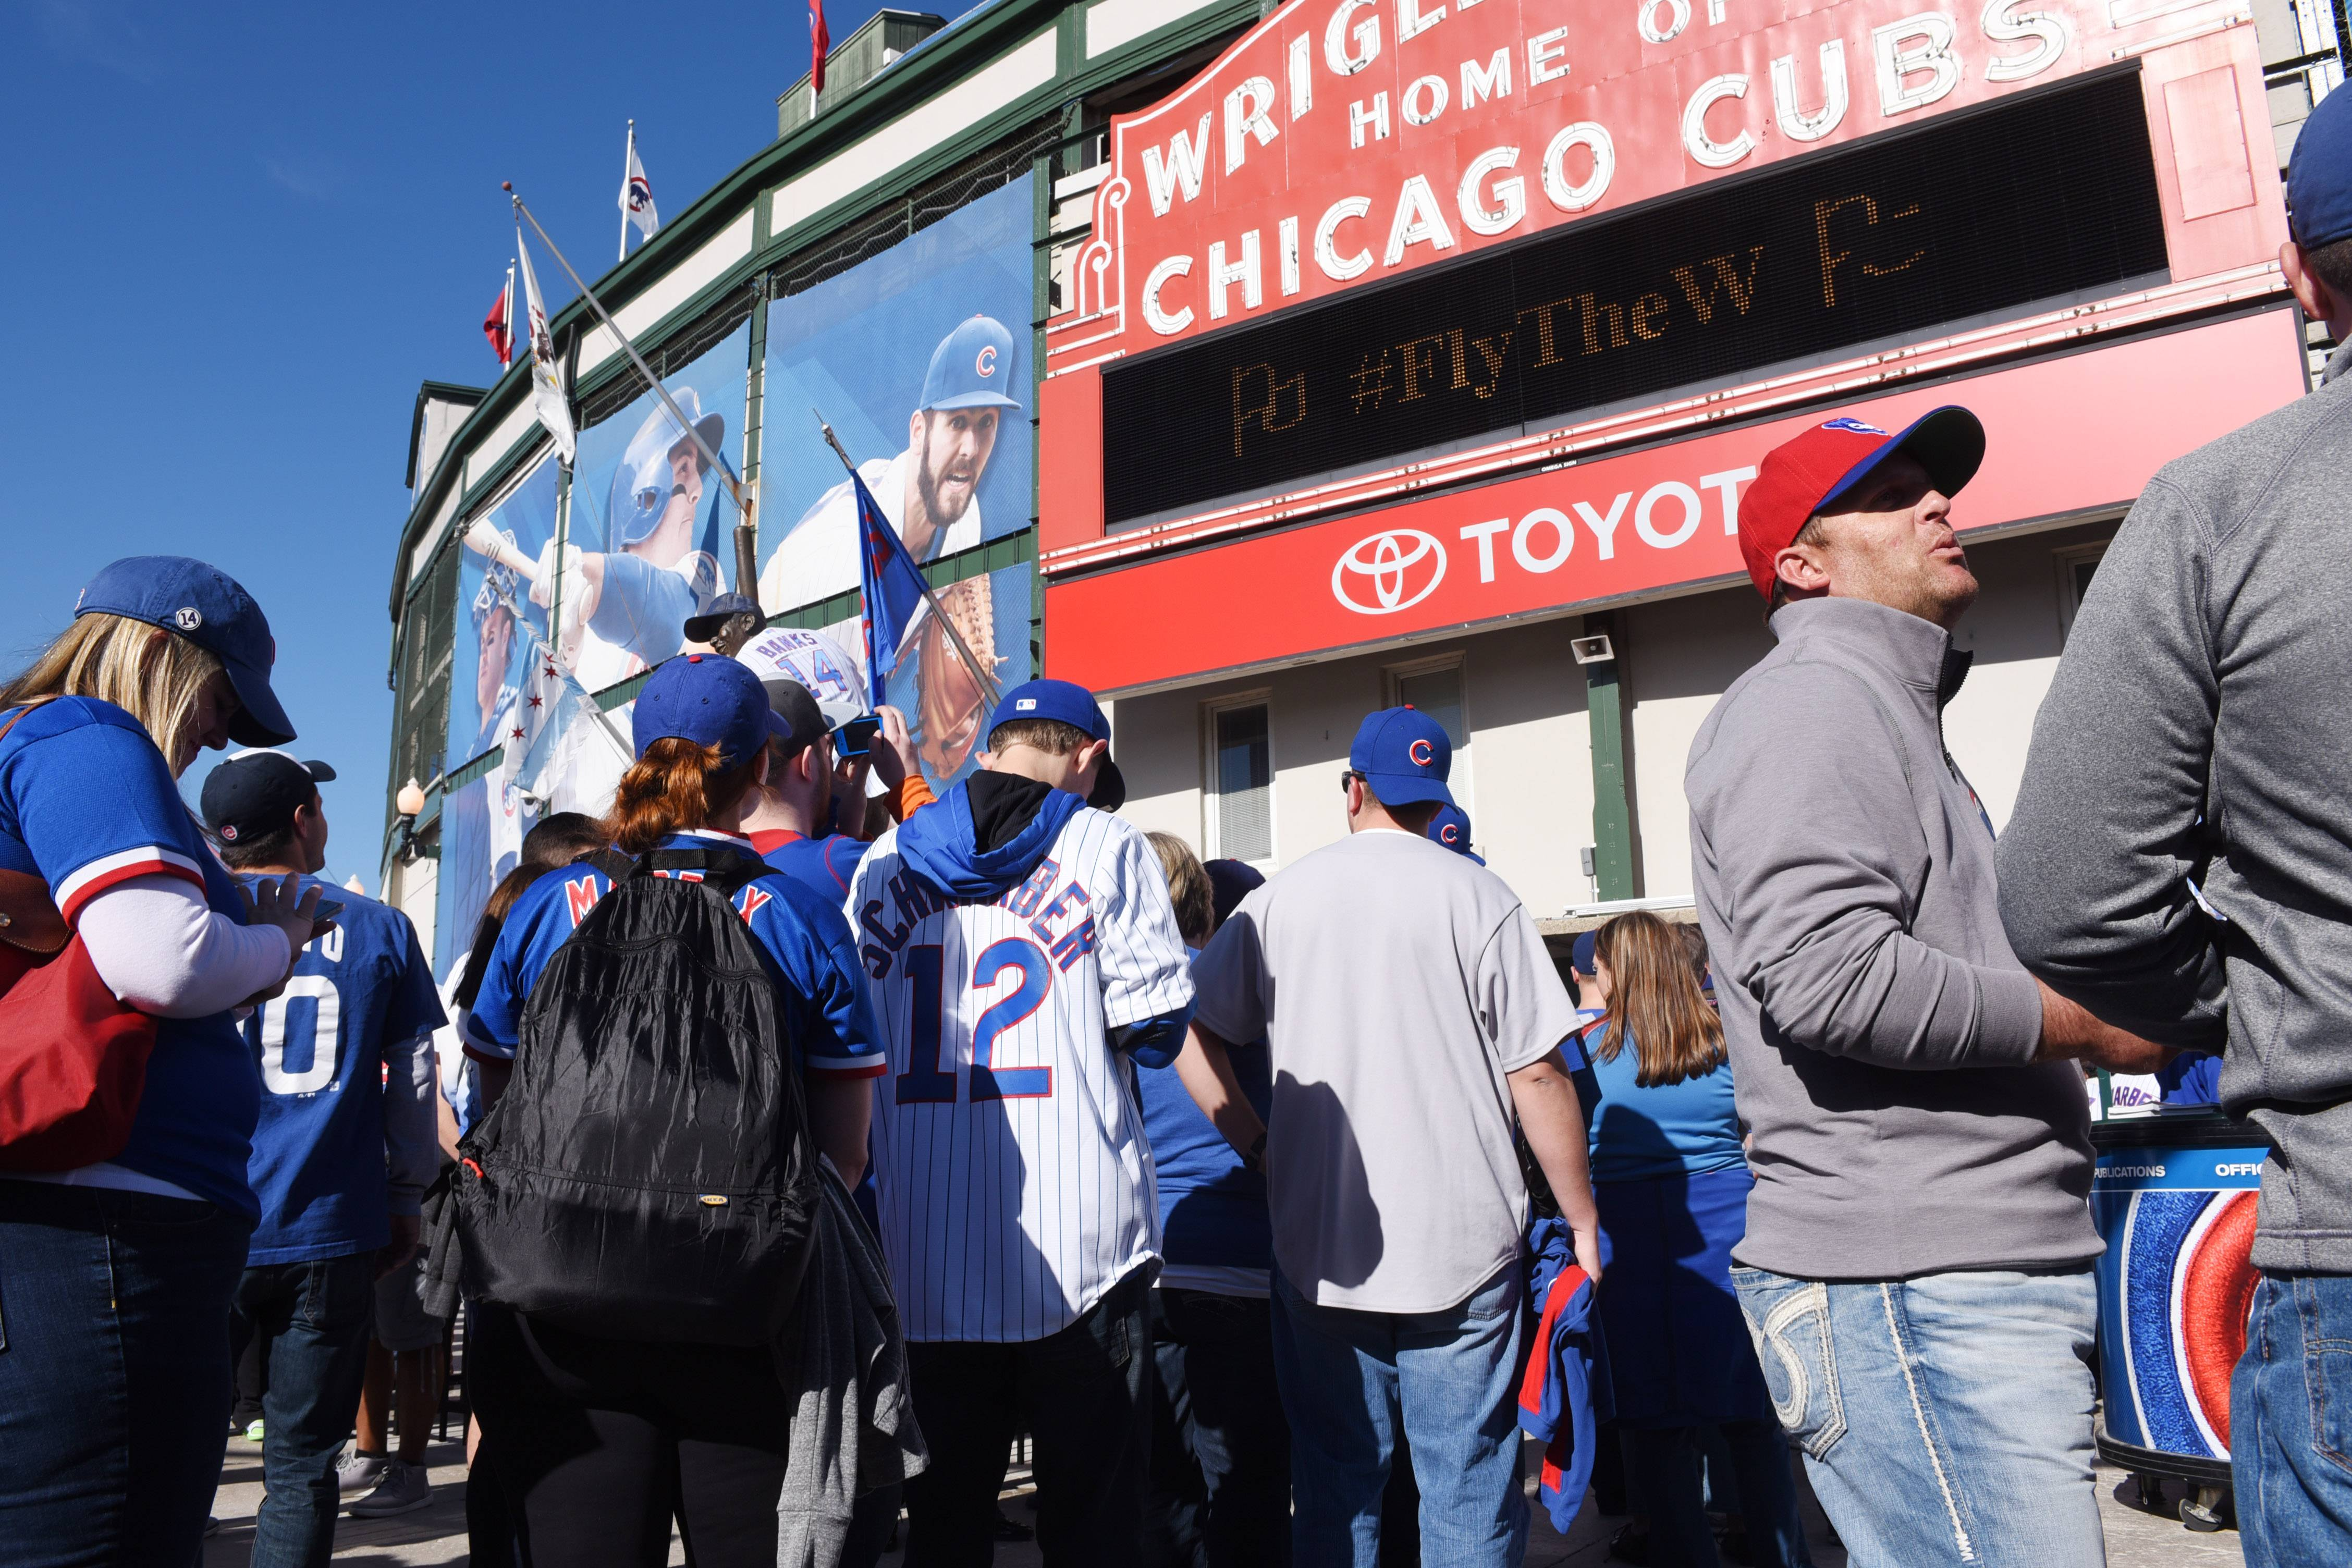 Many lucky fans will take the afternoon off today to attend Game 4 of the National League Division Series at Wrigley Field. But if you have to work, perhaps your boss will let you keep the radio on or stream the game on your computer.